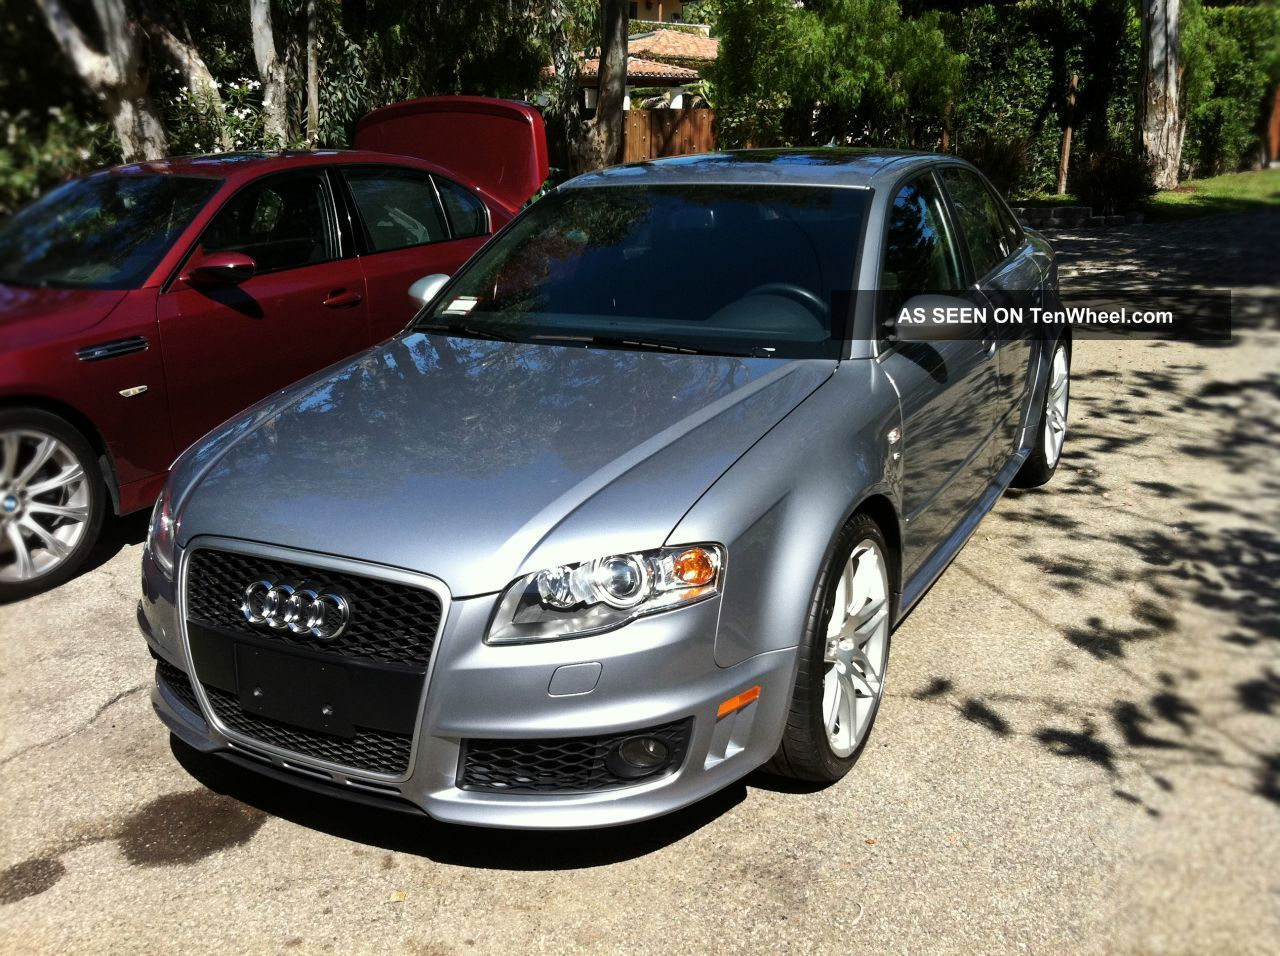 service manual 2008 audi rs4 door trim buy used 2008 audi rs4 cabriolet convertible 2 door 4. Black Bedroom Furniture Sets. Home Design Ideas